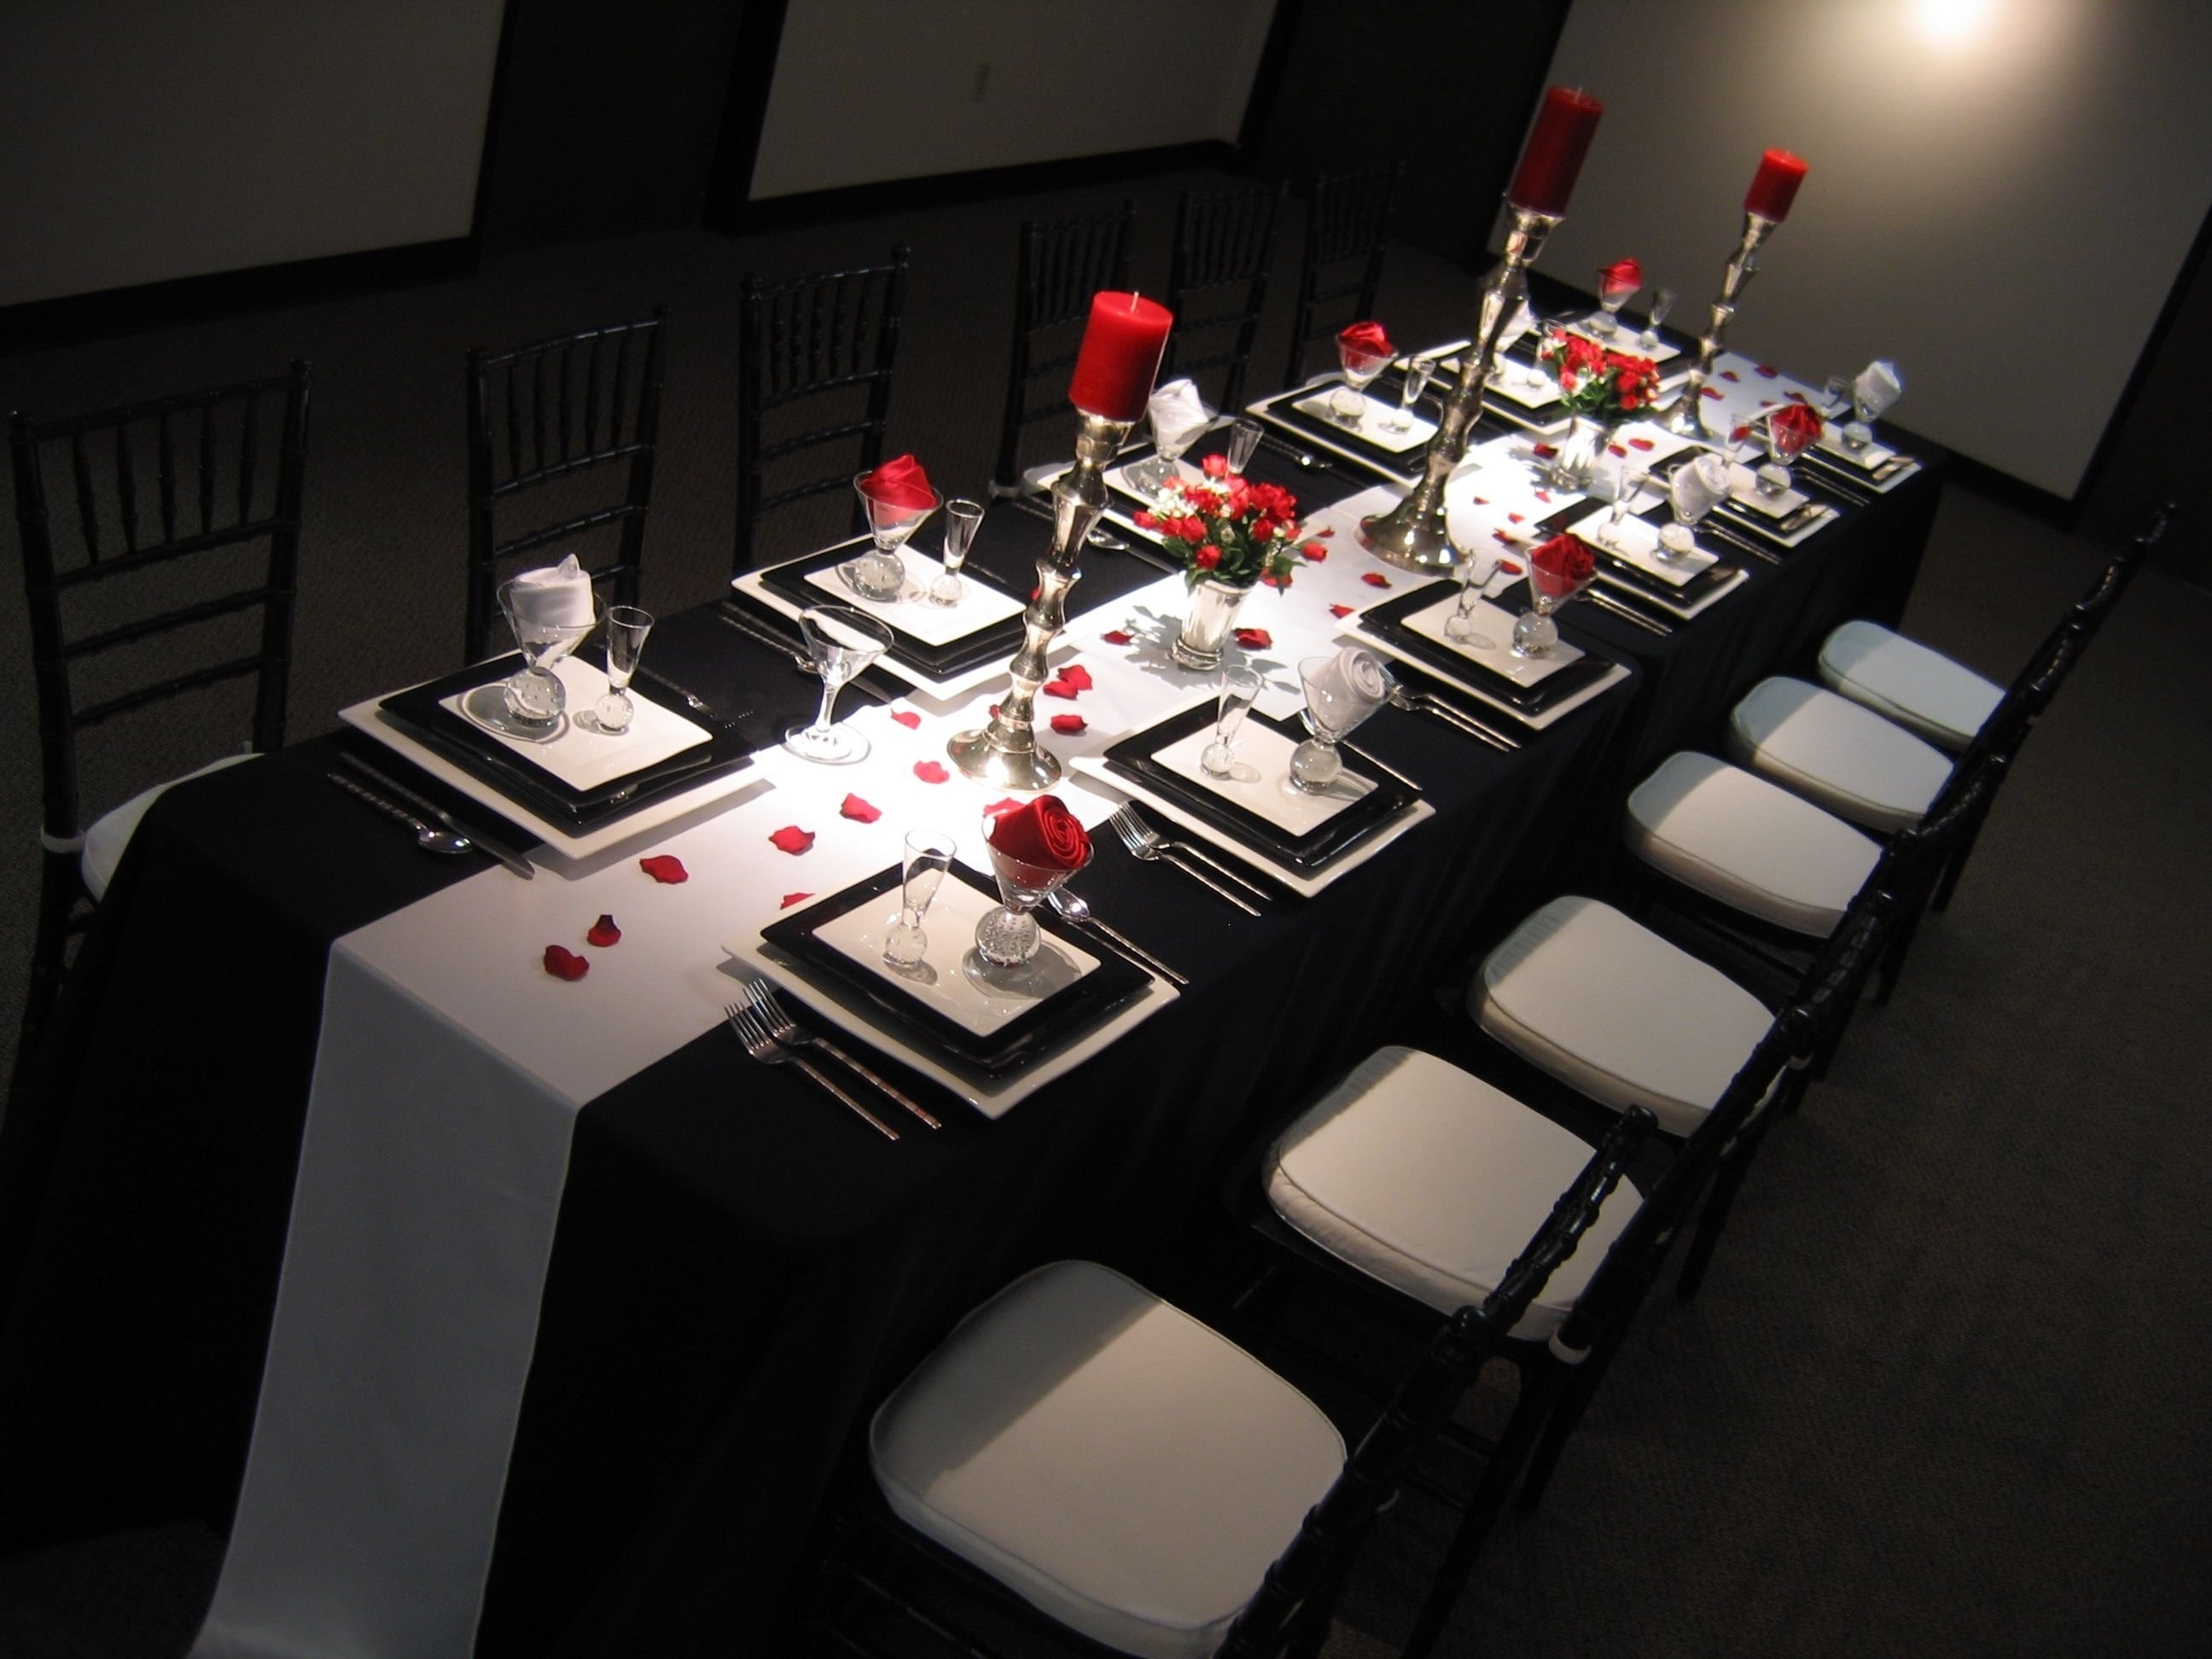 10 Fabulous Red Black And White Wedding Ideas silver wedding anniversary decorating ideas red black and white